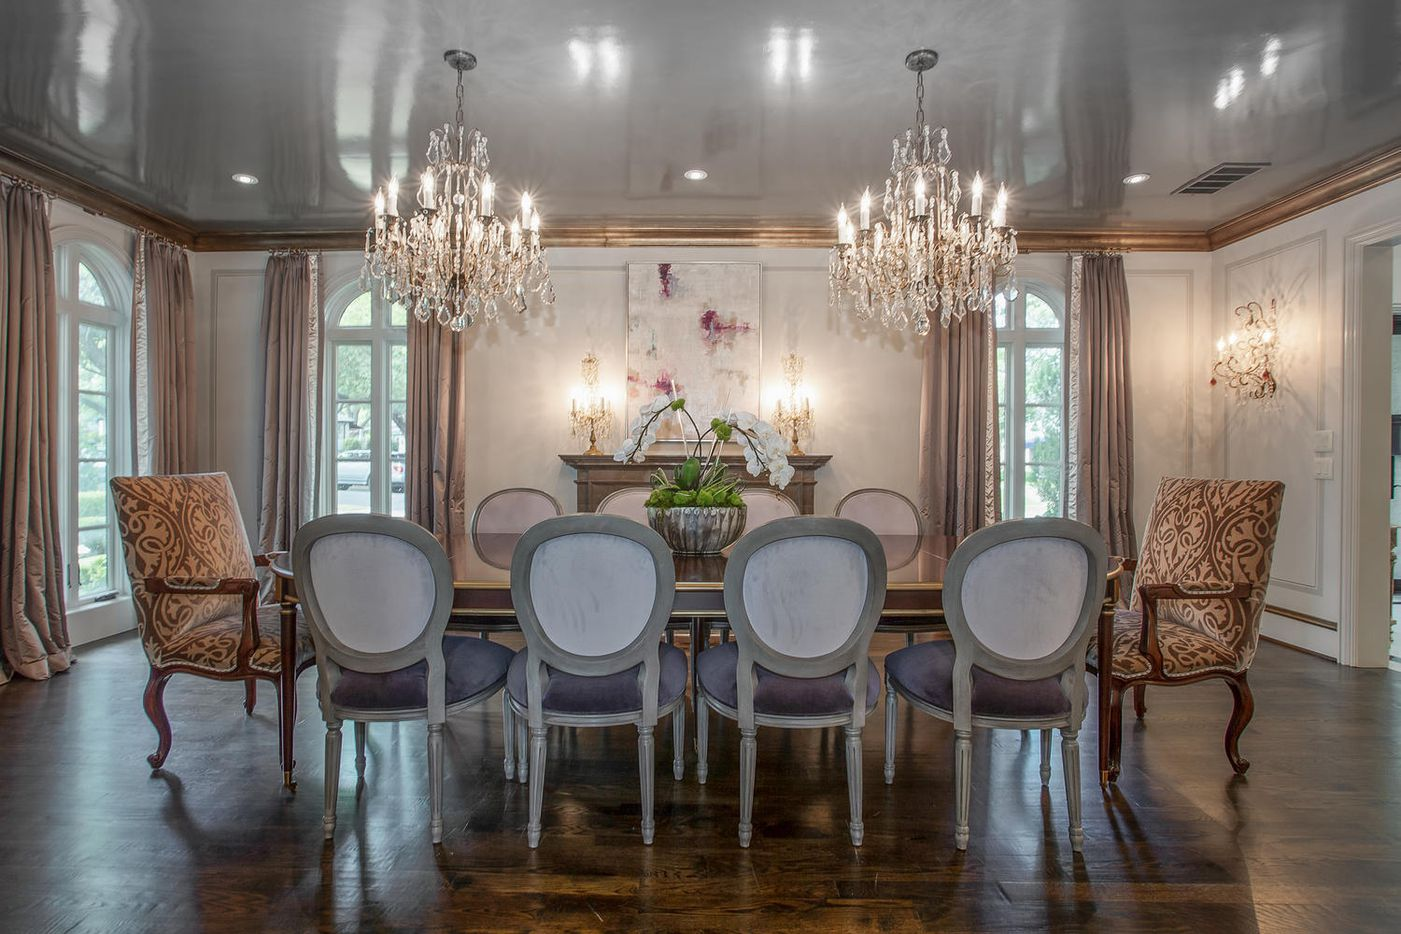 Take a look at the home at 2425 Stadium Drive in Fort Worth.